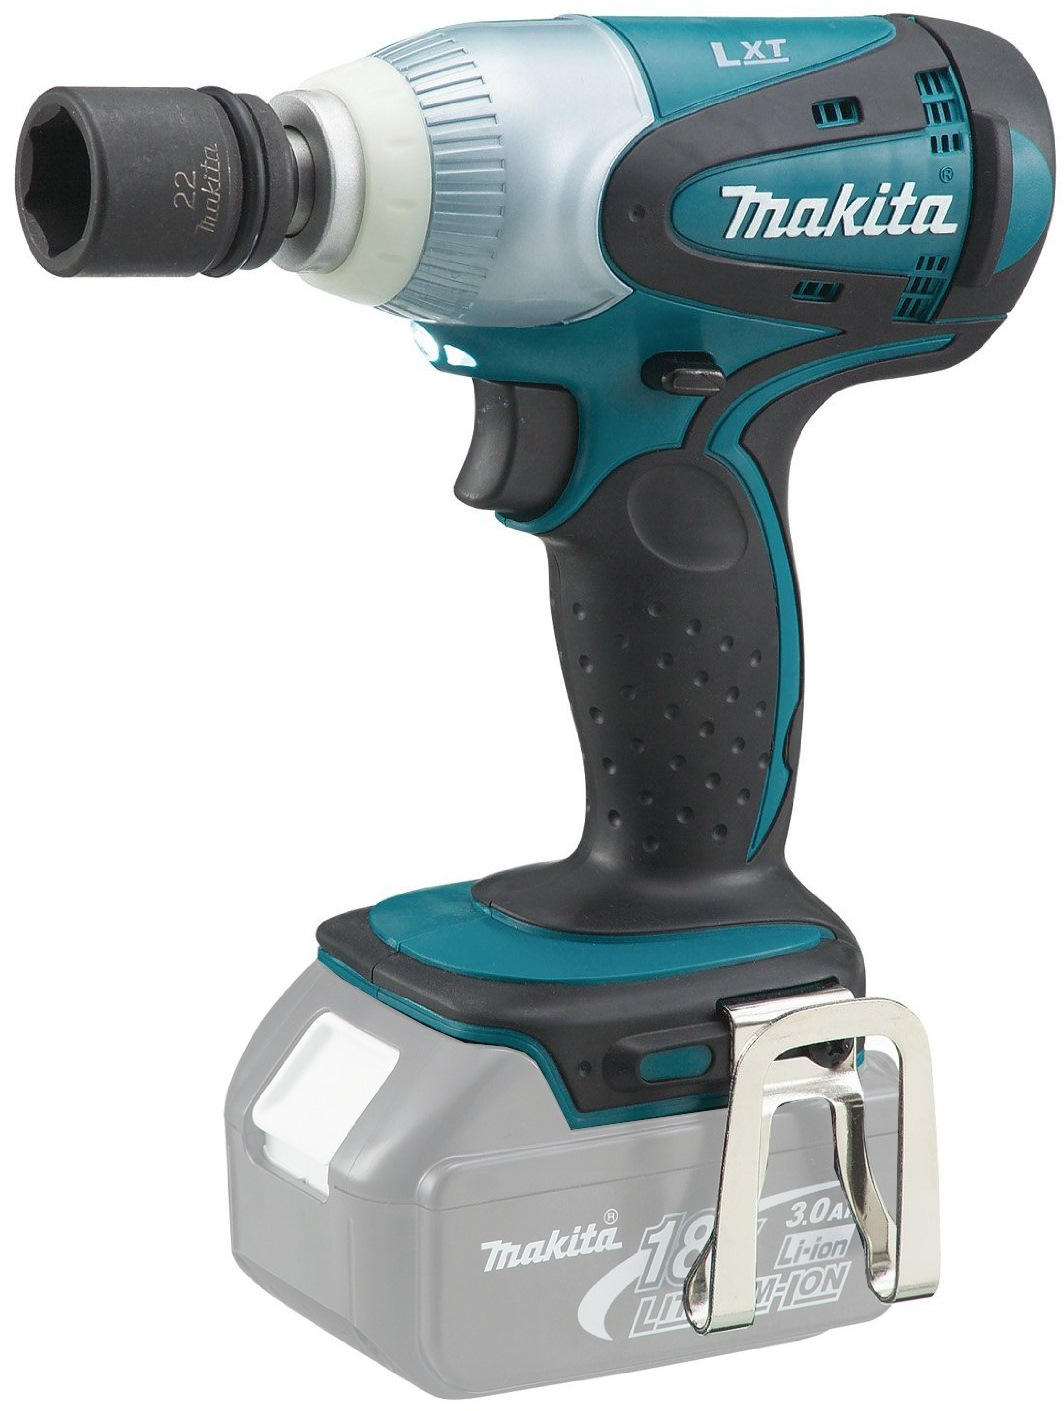 MAKITA 18V LI-ION 12.7MM IMPACT WRENCH, DTW251Z (BARE UNIT)